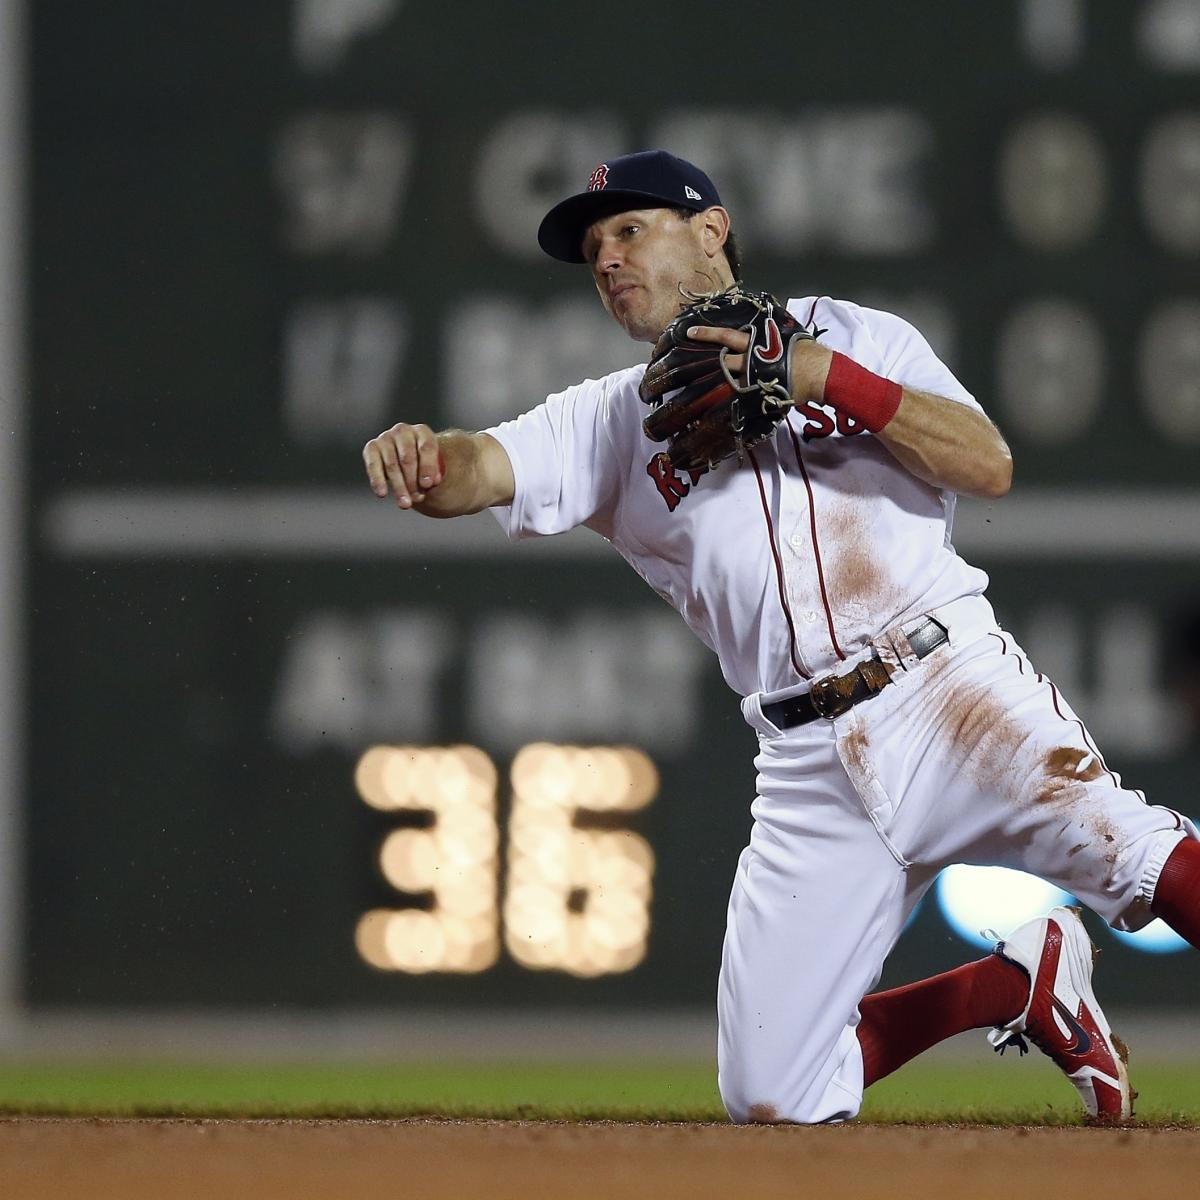 Ian Kinsler, Padres Reportedly Agree To 2-Year, $8M